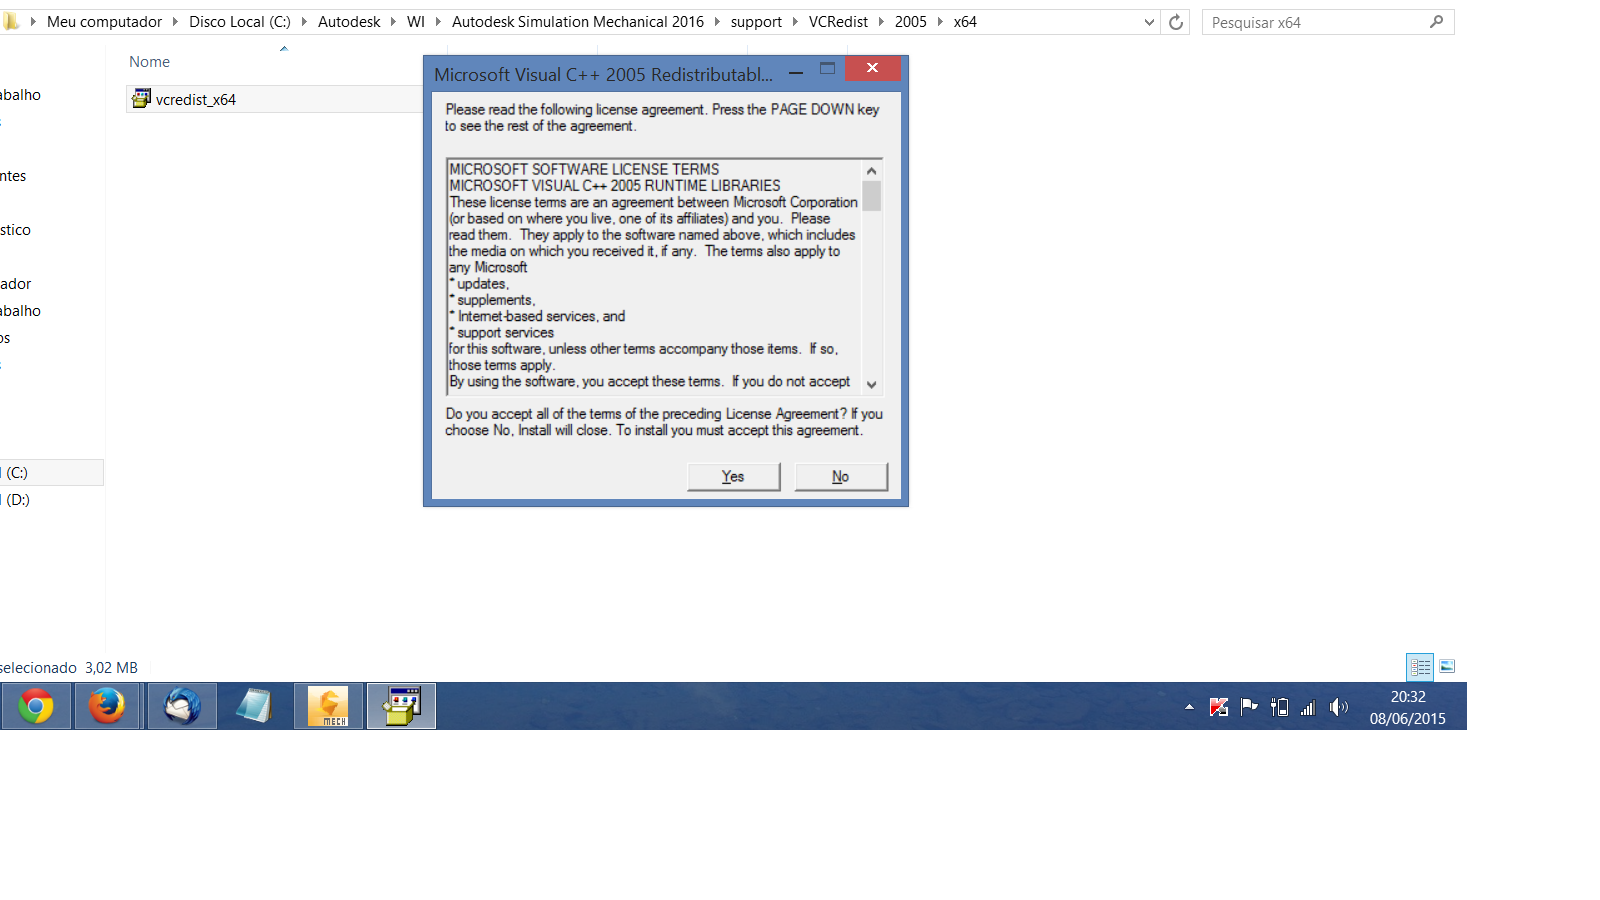 vcruntime140.dll is missing windows 7 ultimate